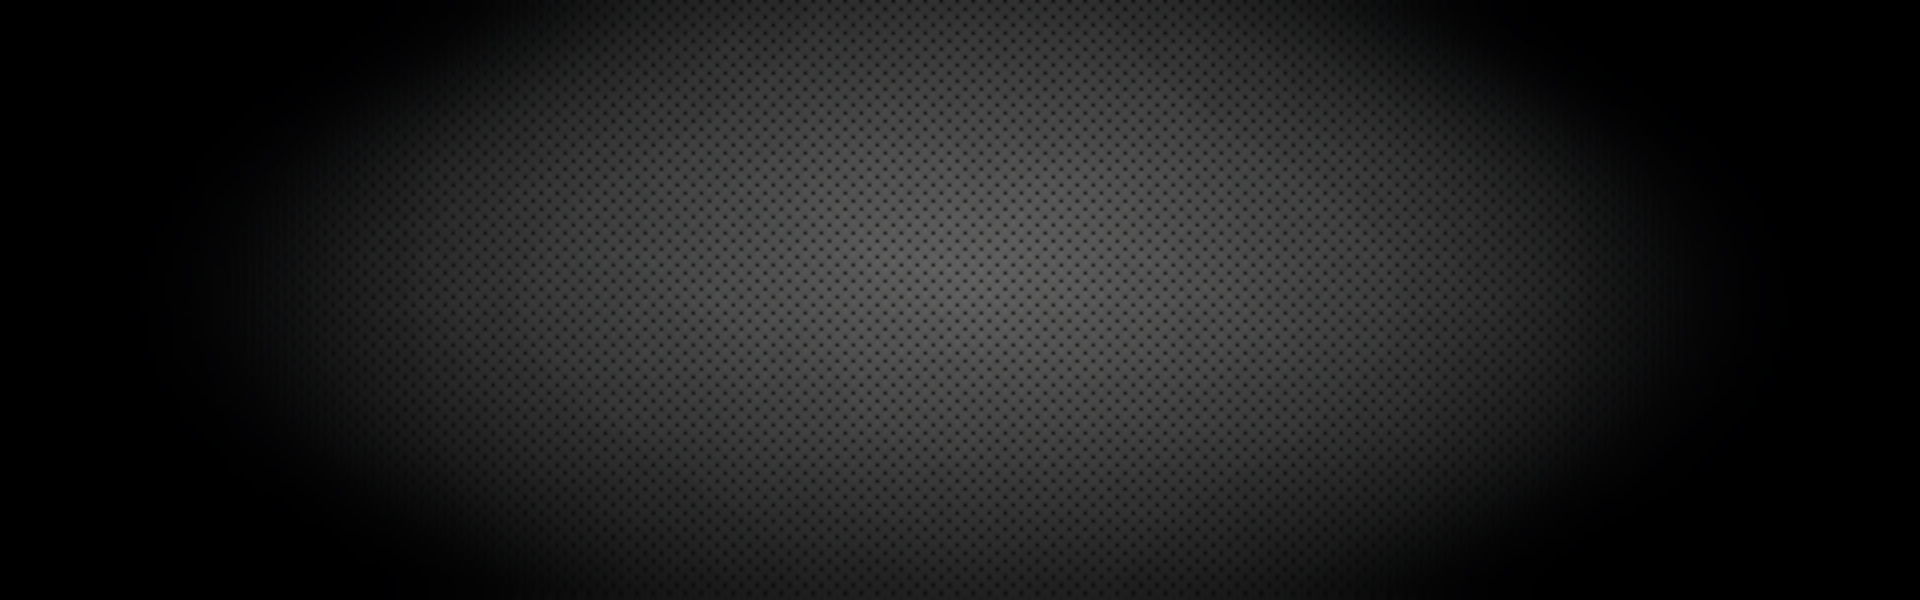 gray_background-eff